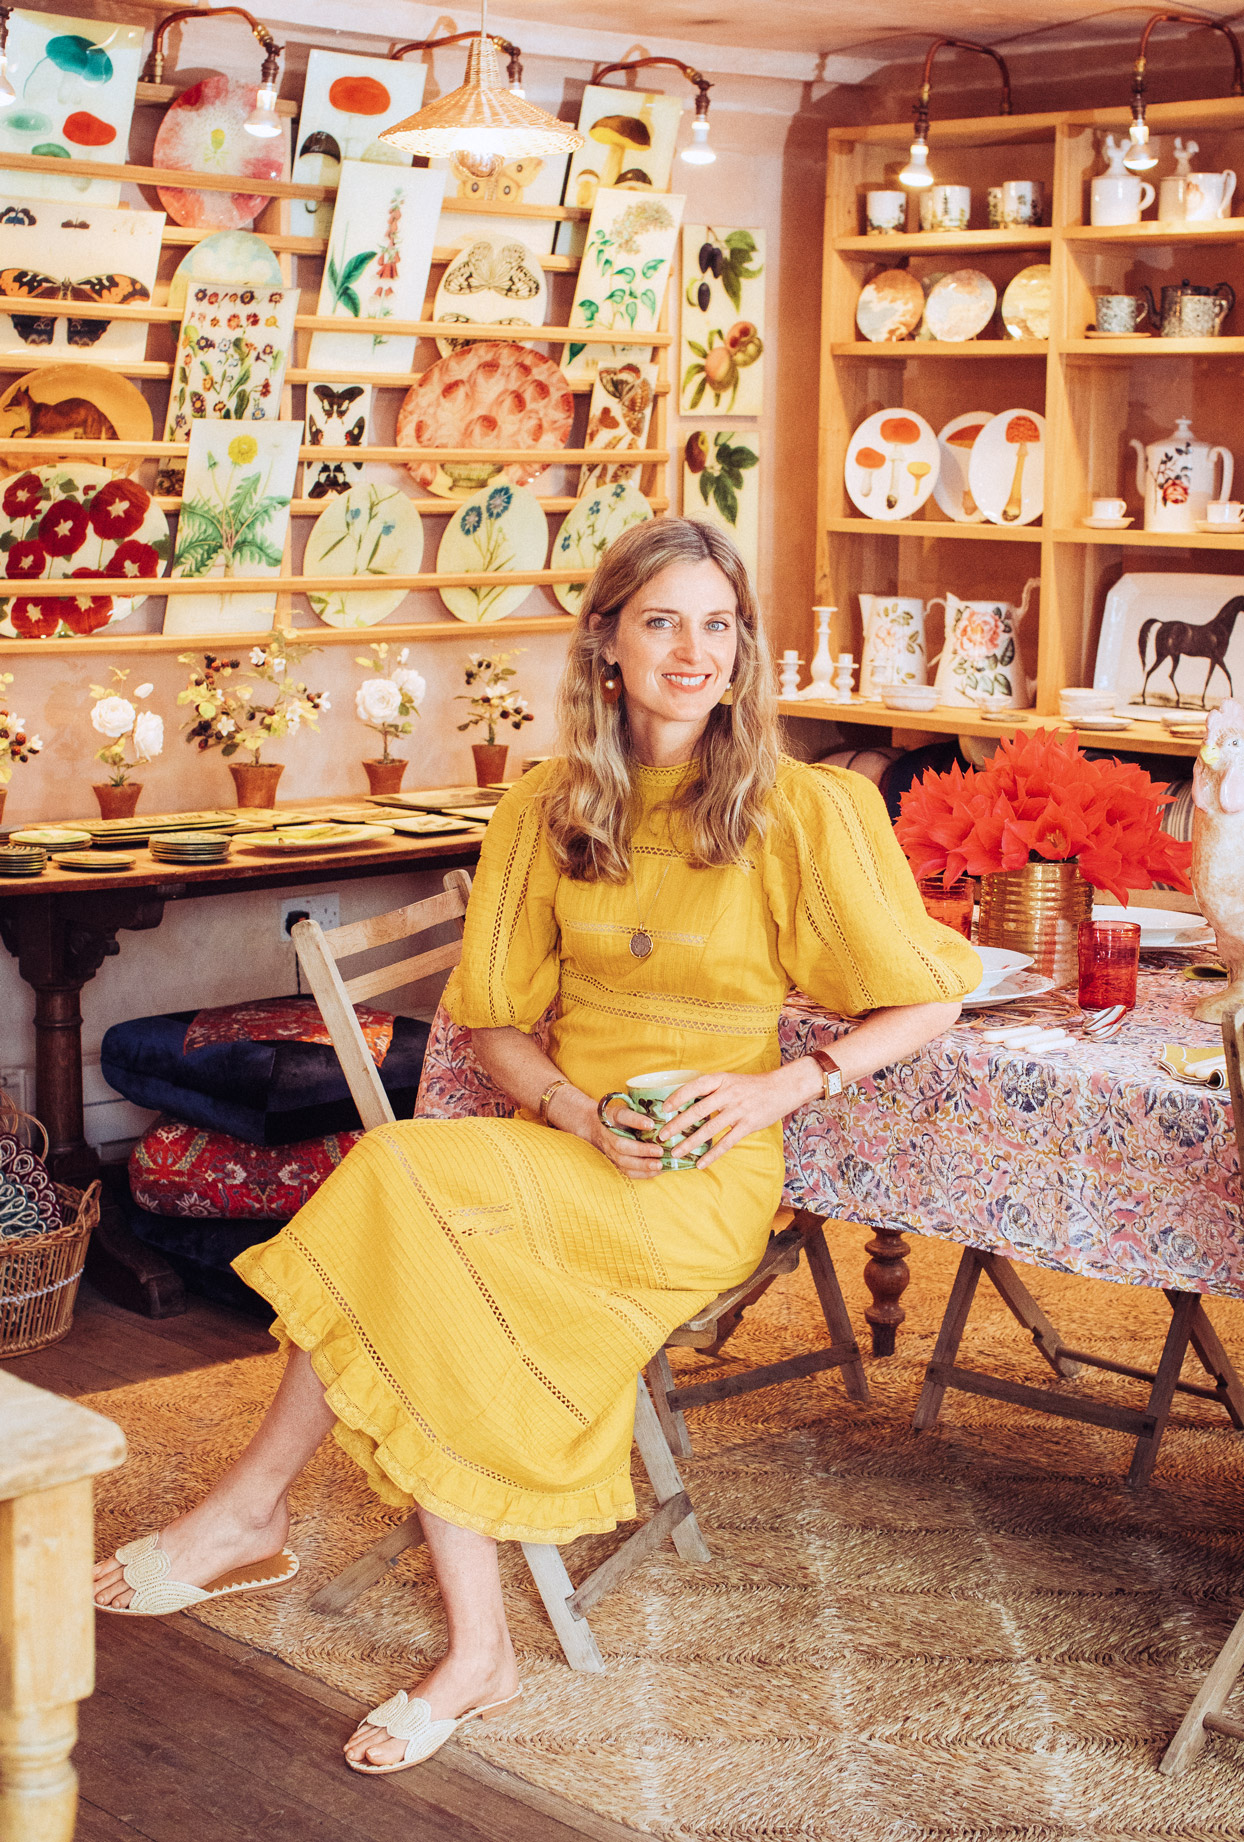 Amanda Brooks' Personal Style Is a Cross Between Pastoral Chic and Global Bohemian